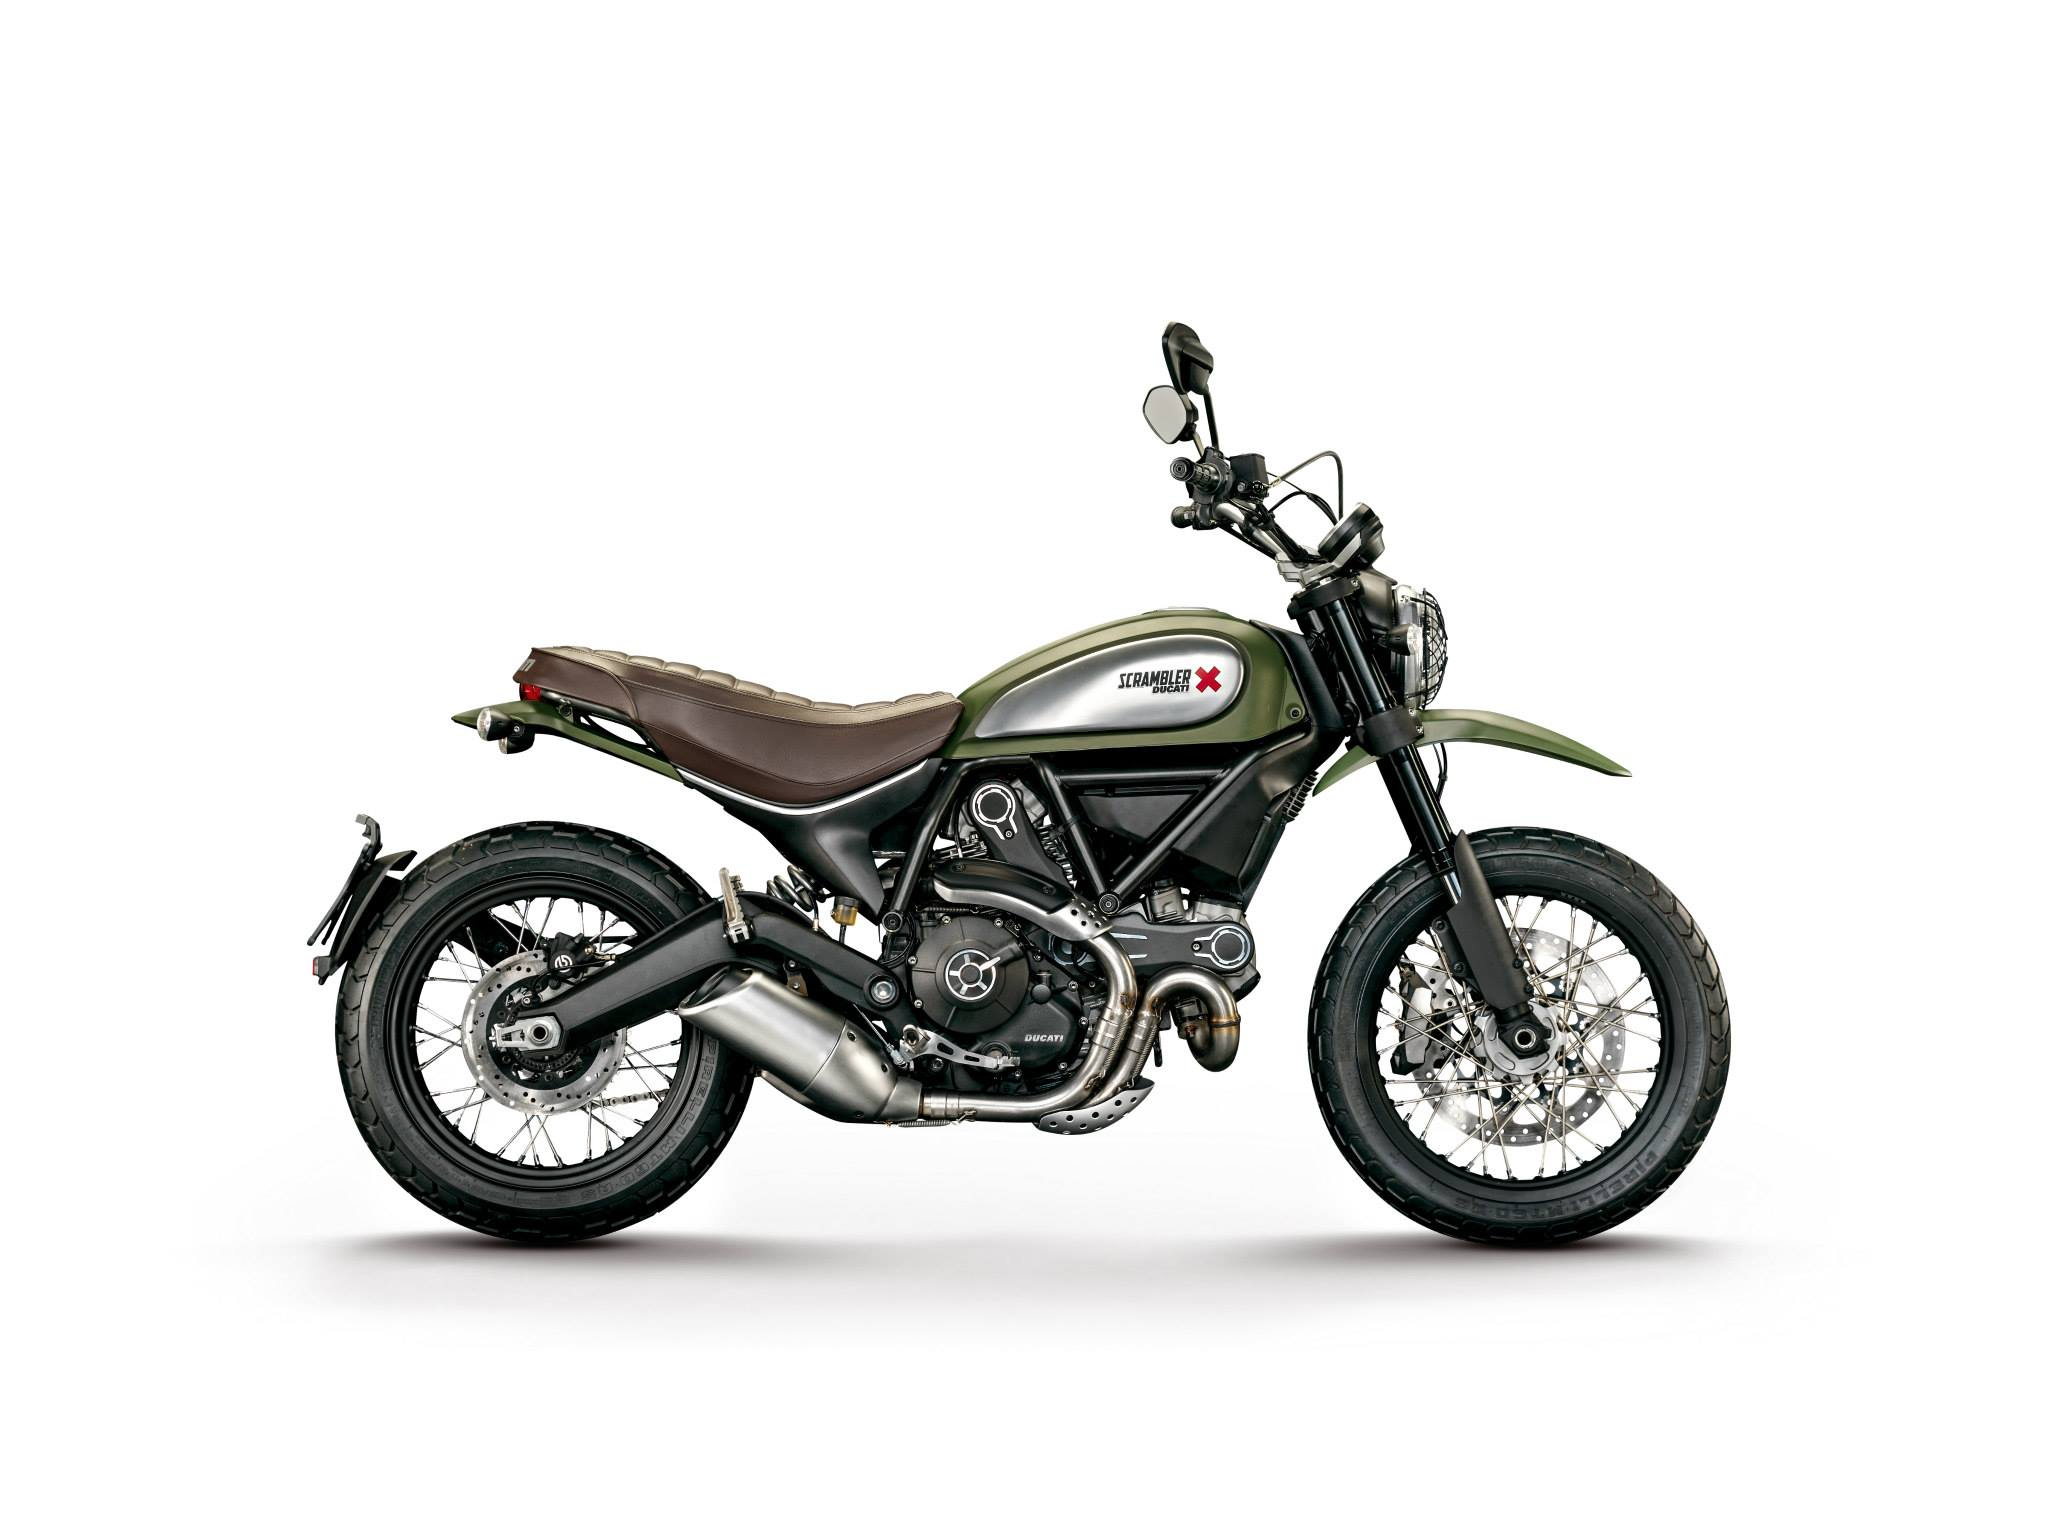 Ducati Scrambler Motorcycle and scooter rentals in Bologna (Italy)